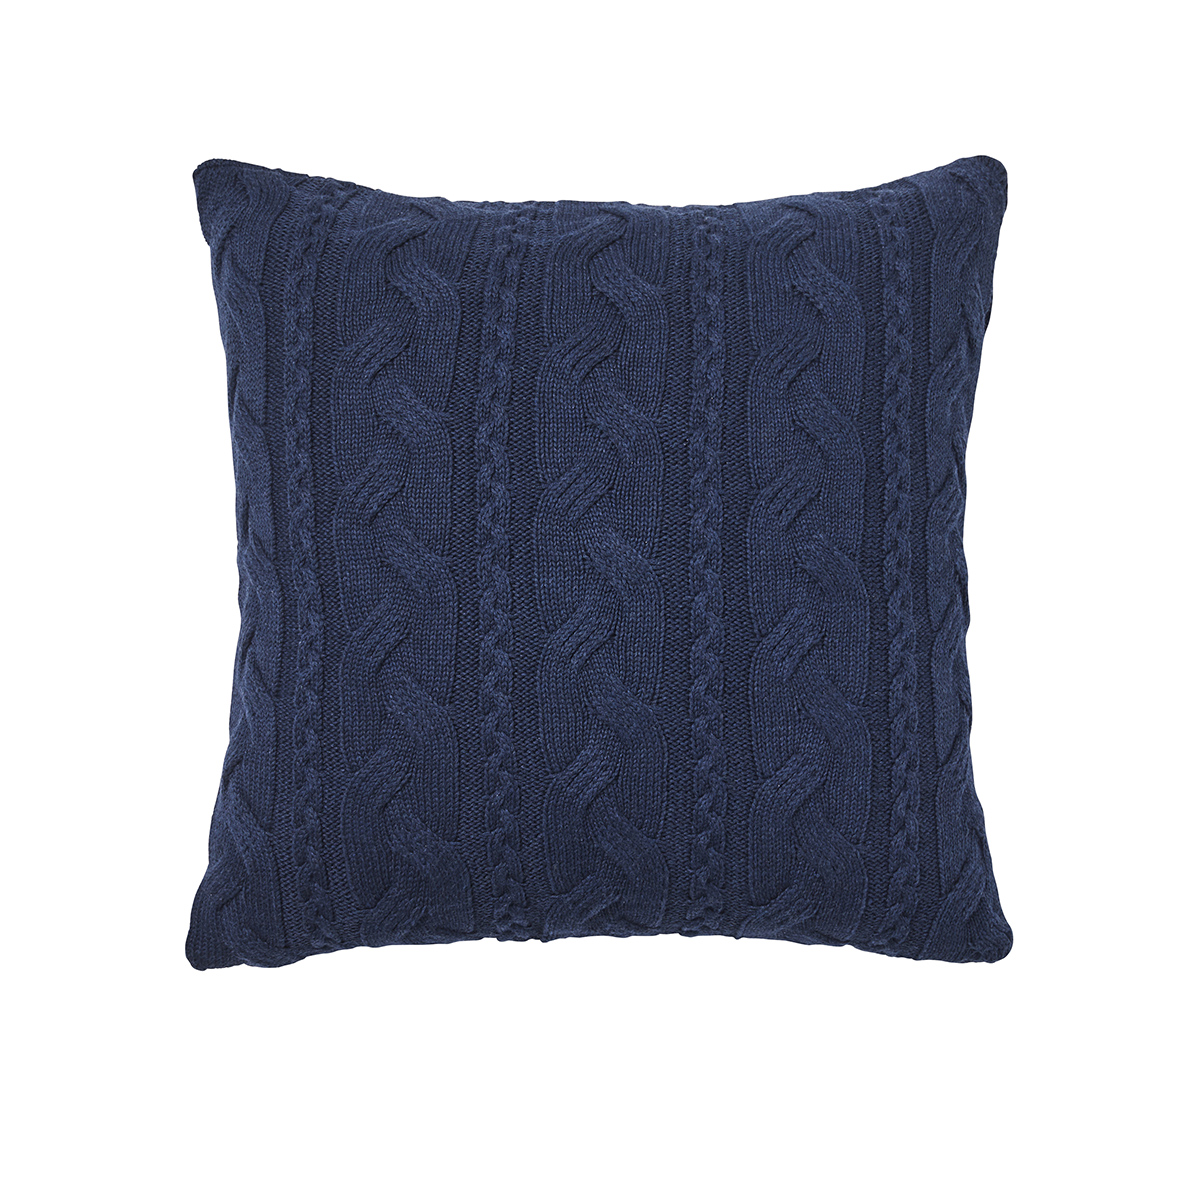 The high-quality pillows, throws and poufs we have available work well for adding detail and depth to any room in your home, and they provide that inviting feel that beckons to you every time you enter a room.